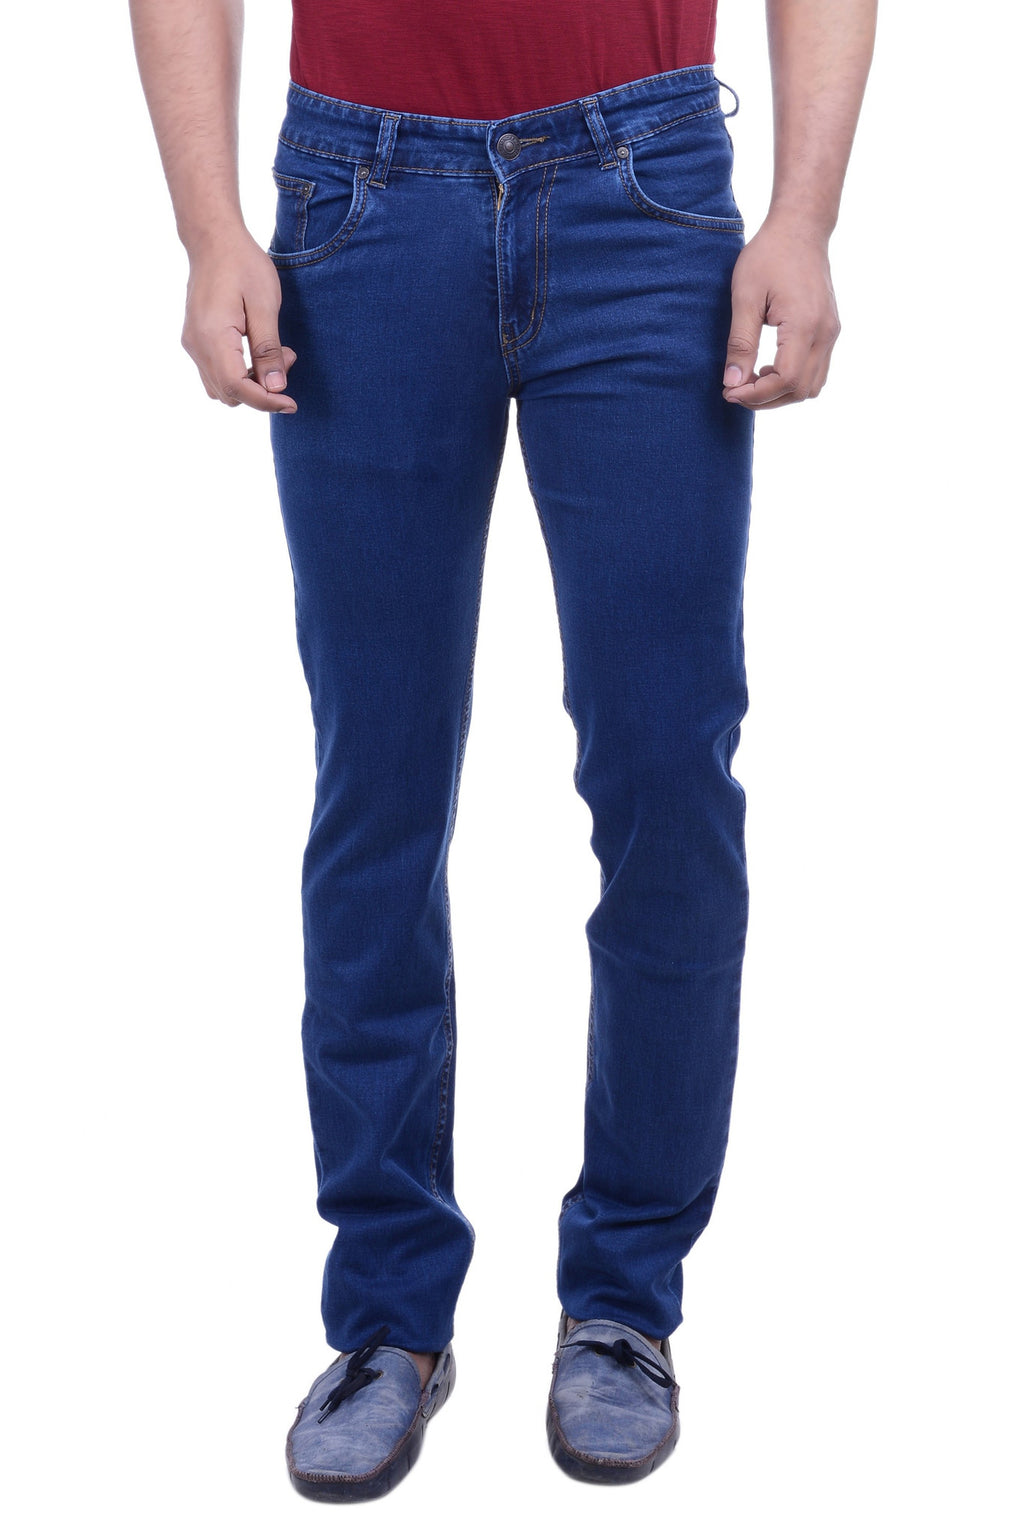 Hoffmen Slim Fit Men's Jeans